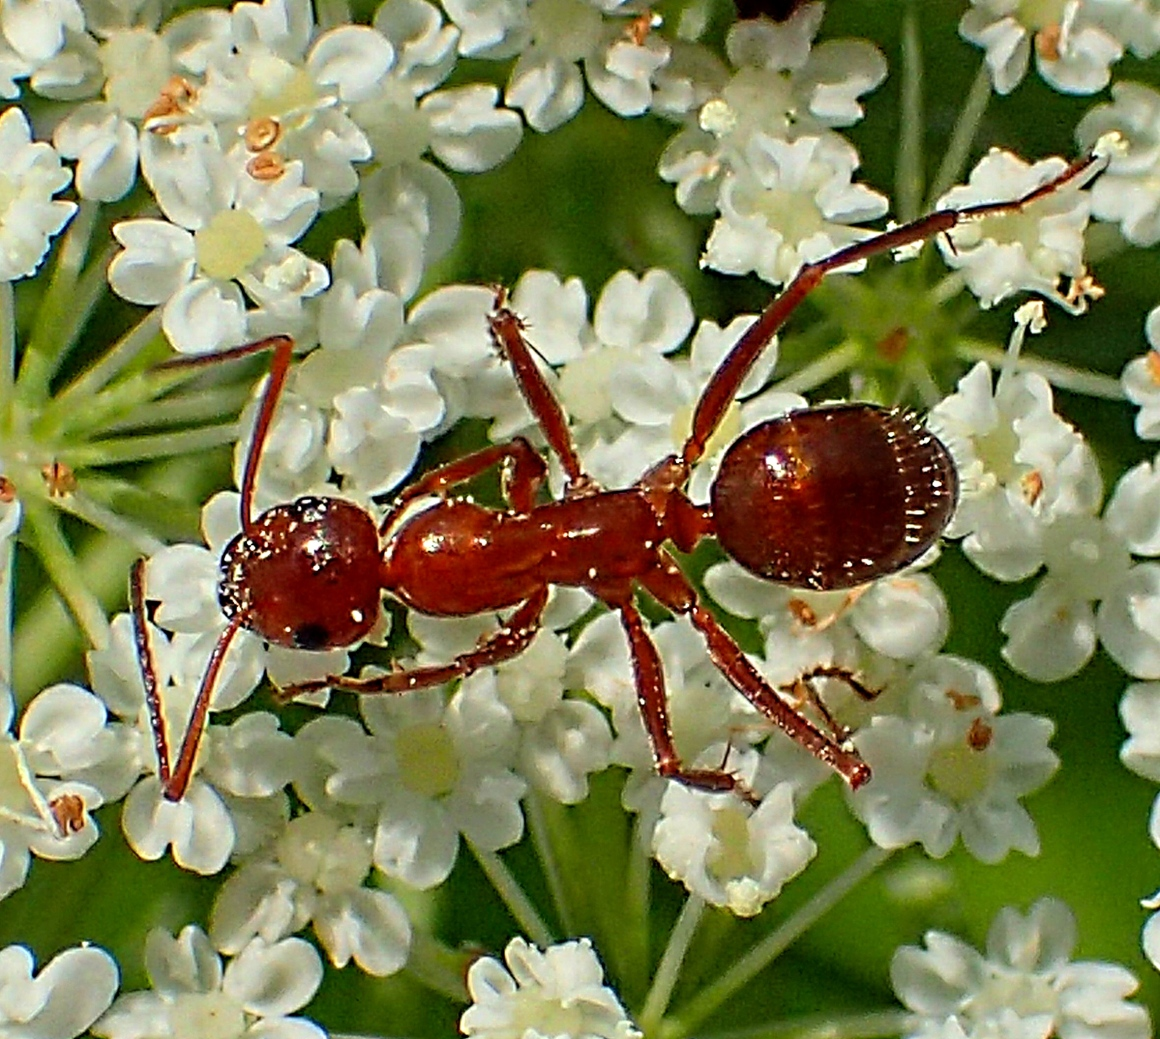 Ant on Queen Ann's Lace (2). Photo by Thomas Peace 2014